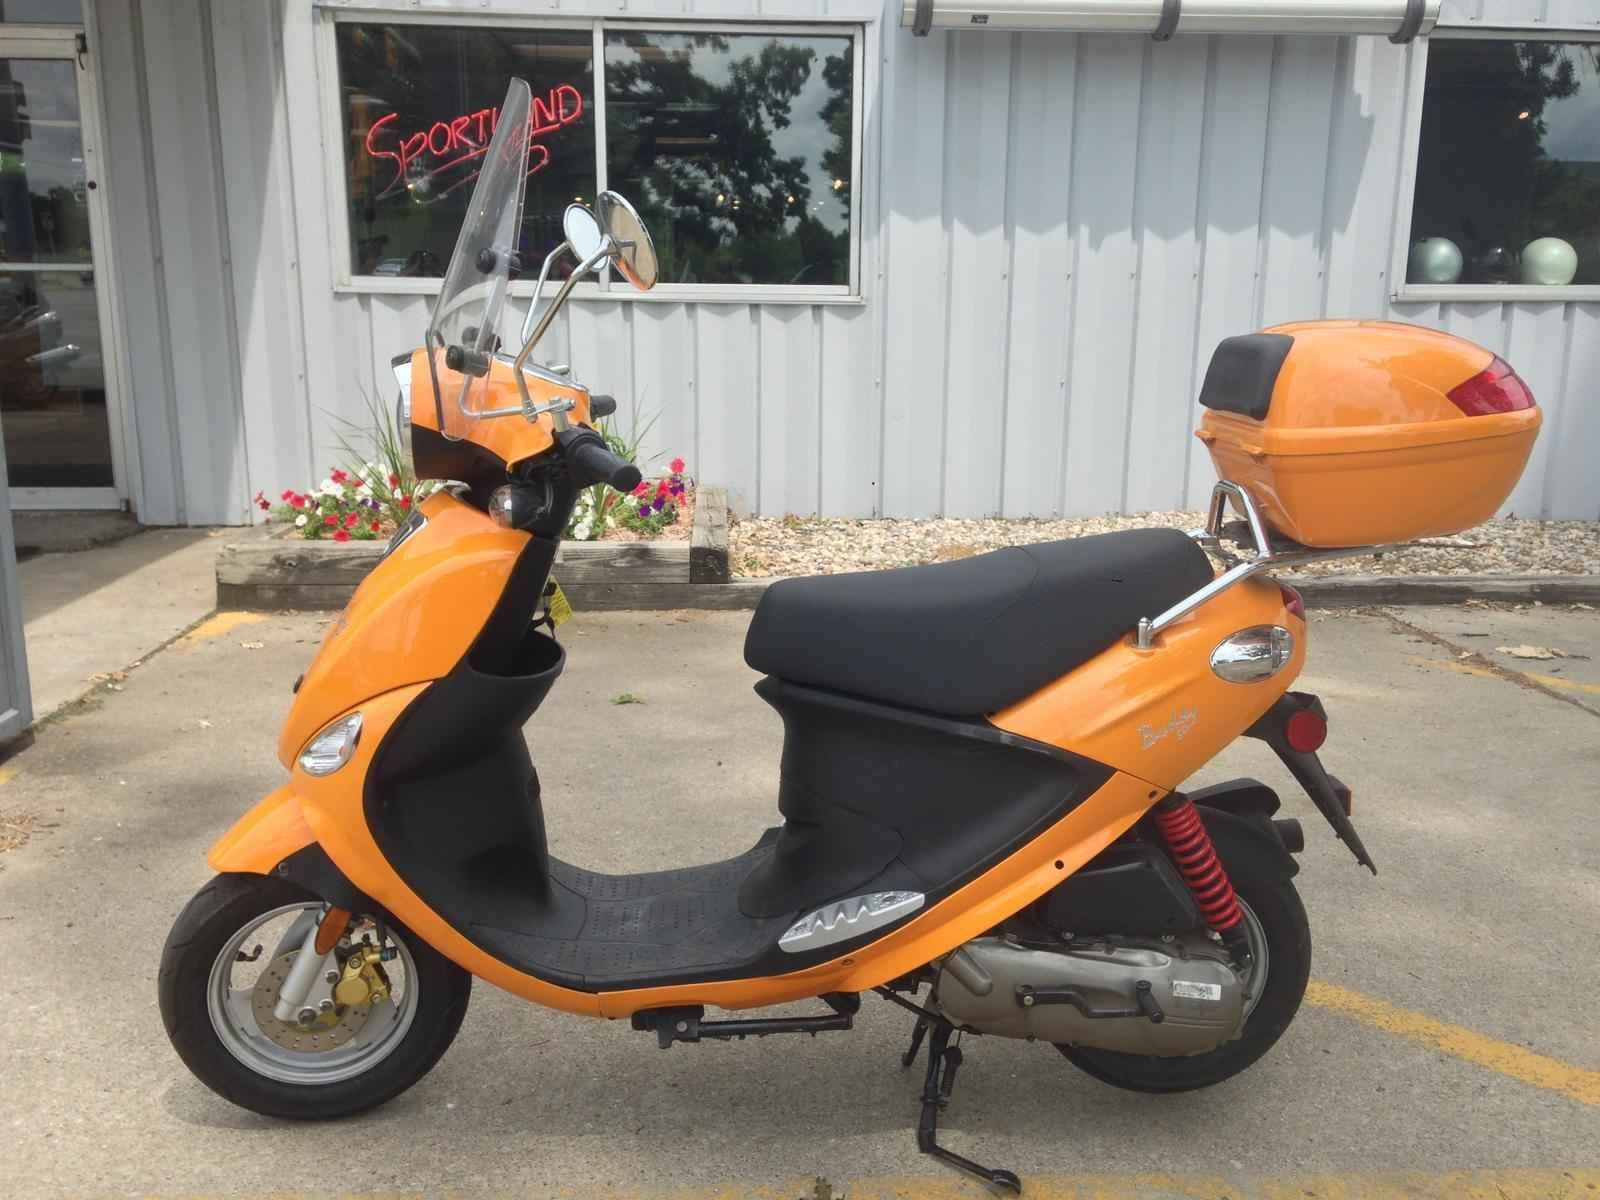 Used 2009 Genuine Scooter Motorcycles For Sale In Illinois Beat Illinoisil